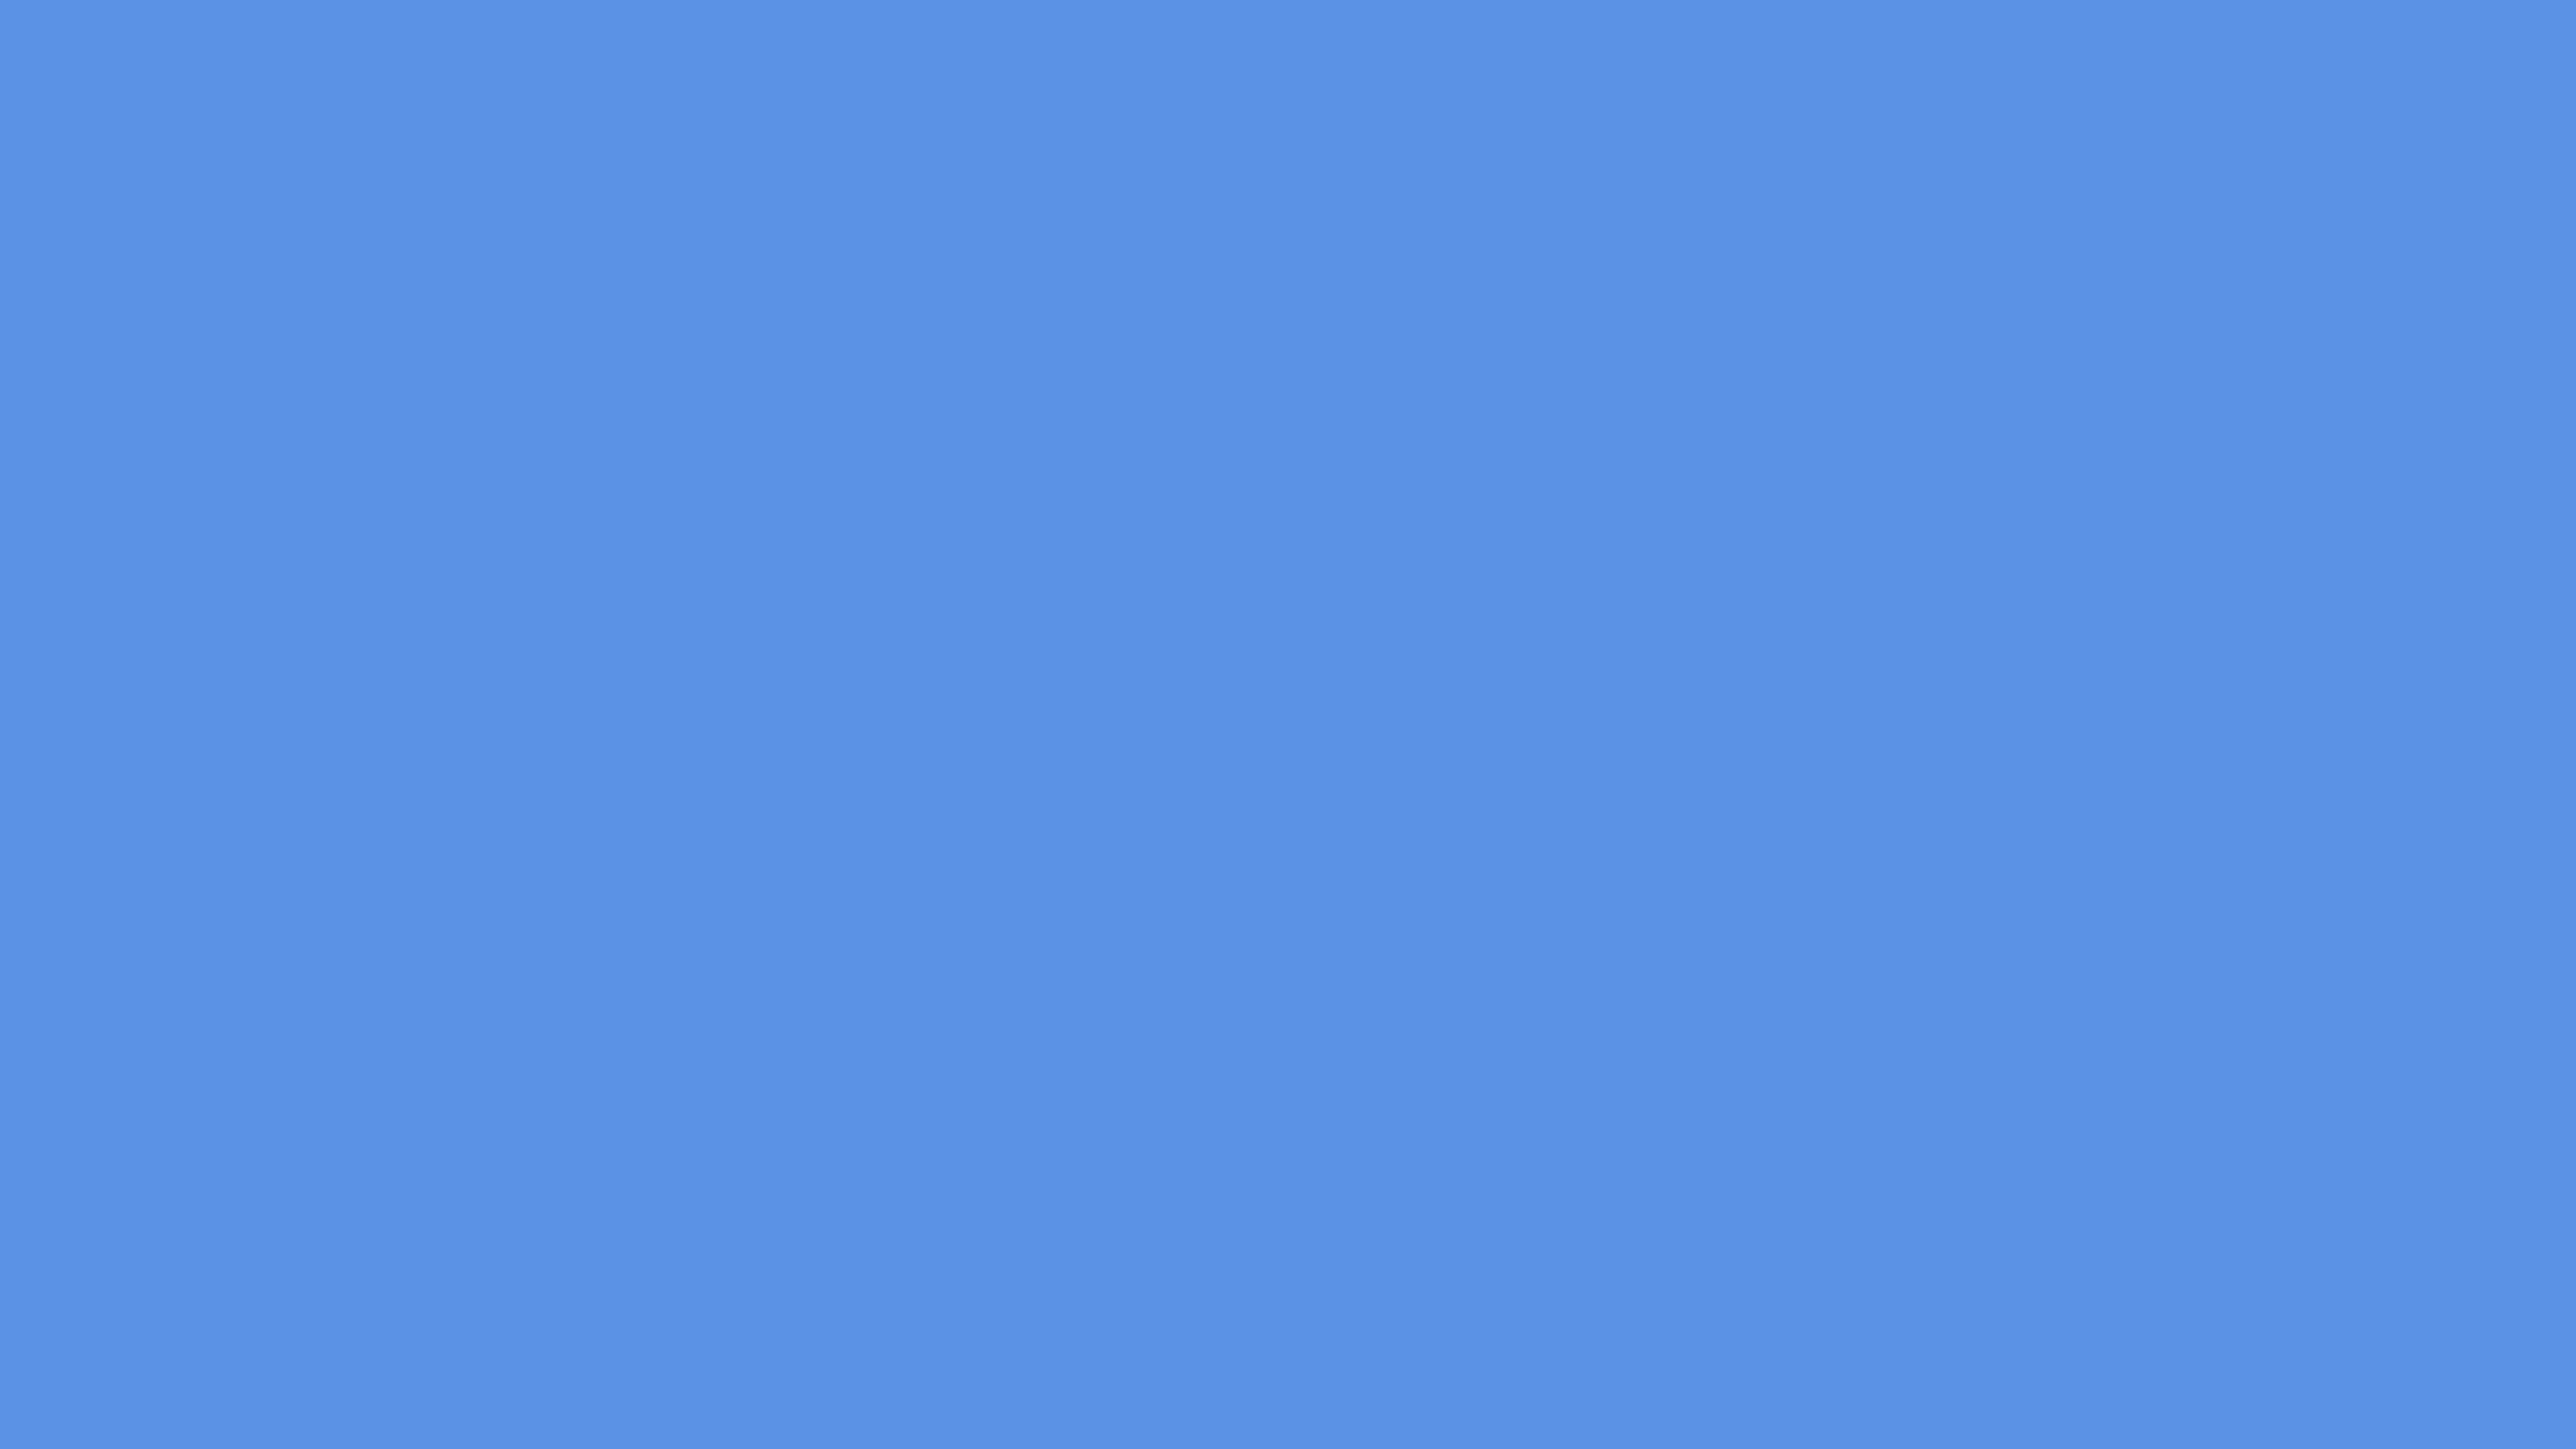 3840x2160 United Nations Blue Solid Color Background